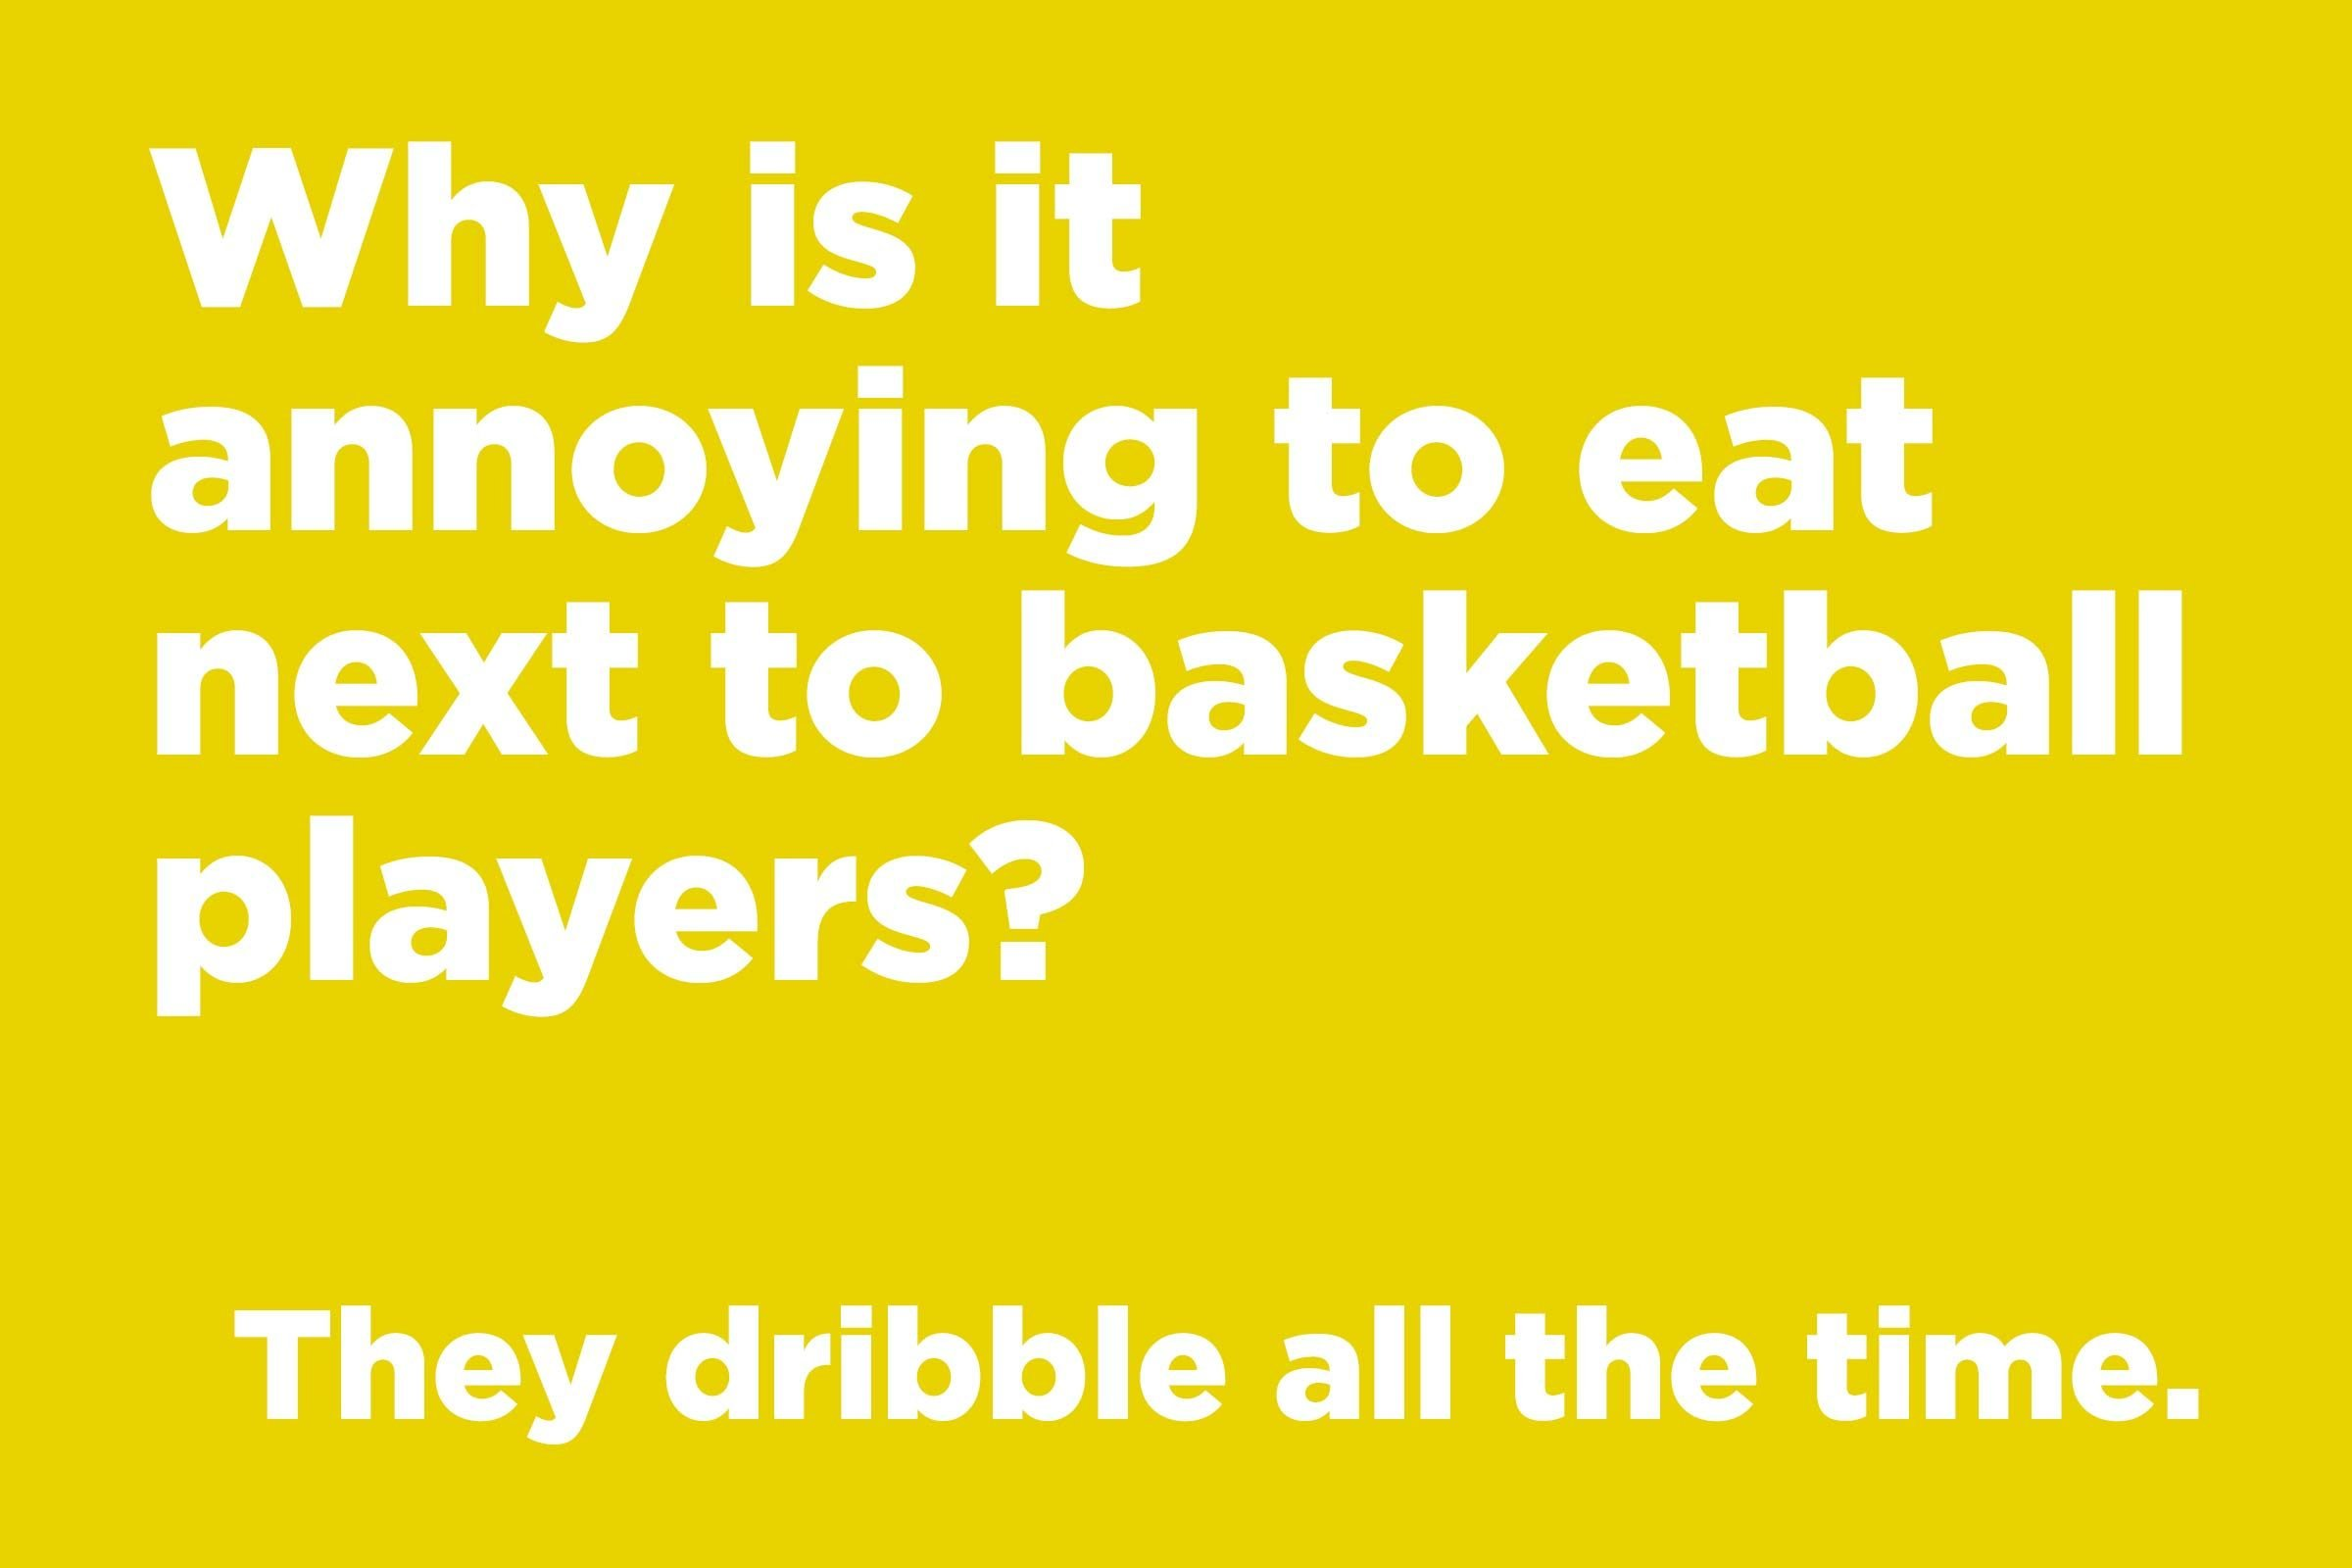 Why is it annoying to eat next to basketball players?